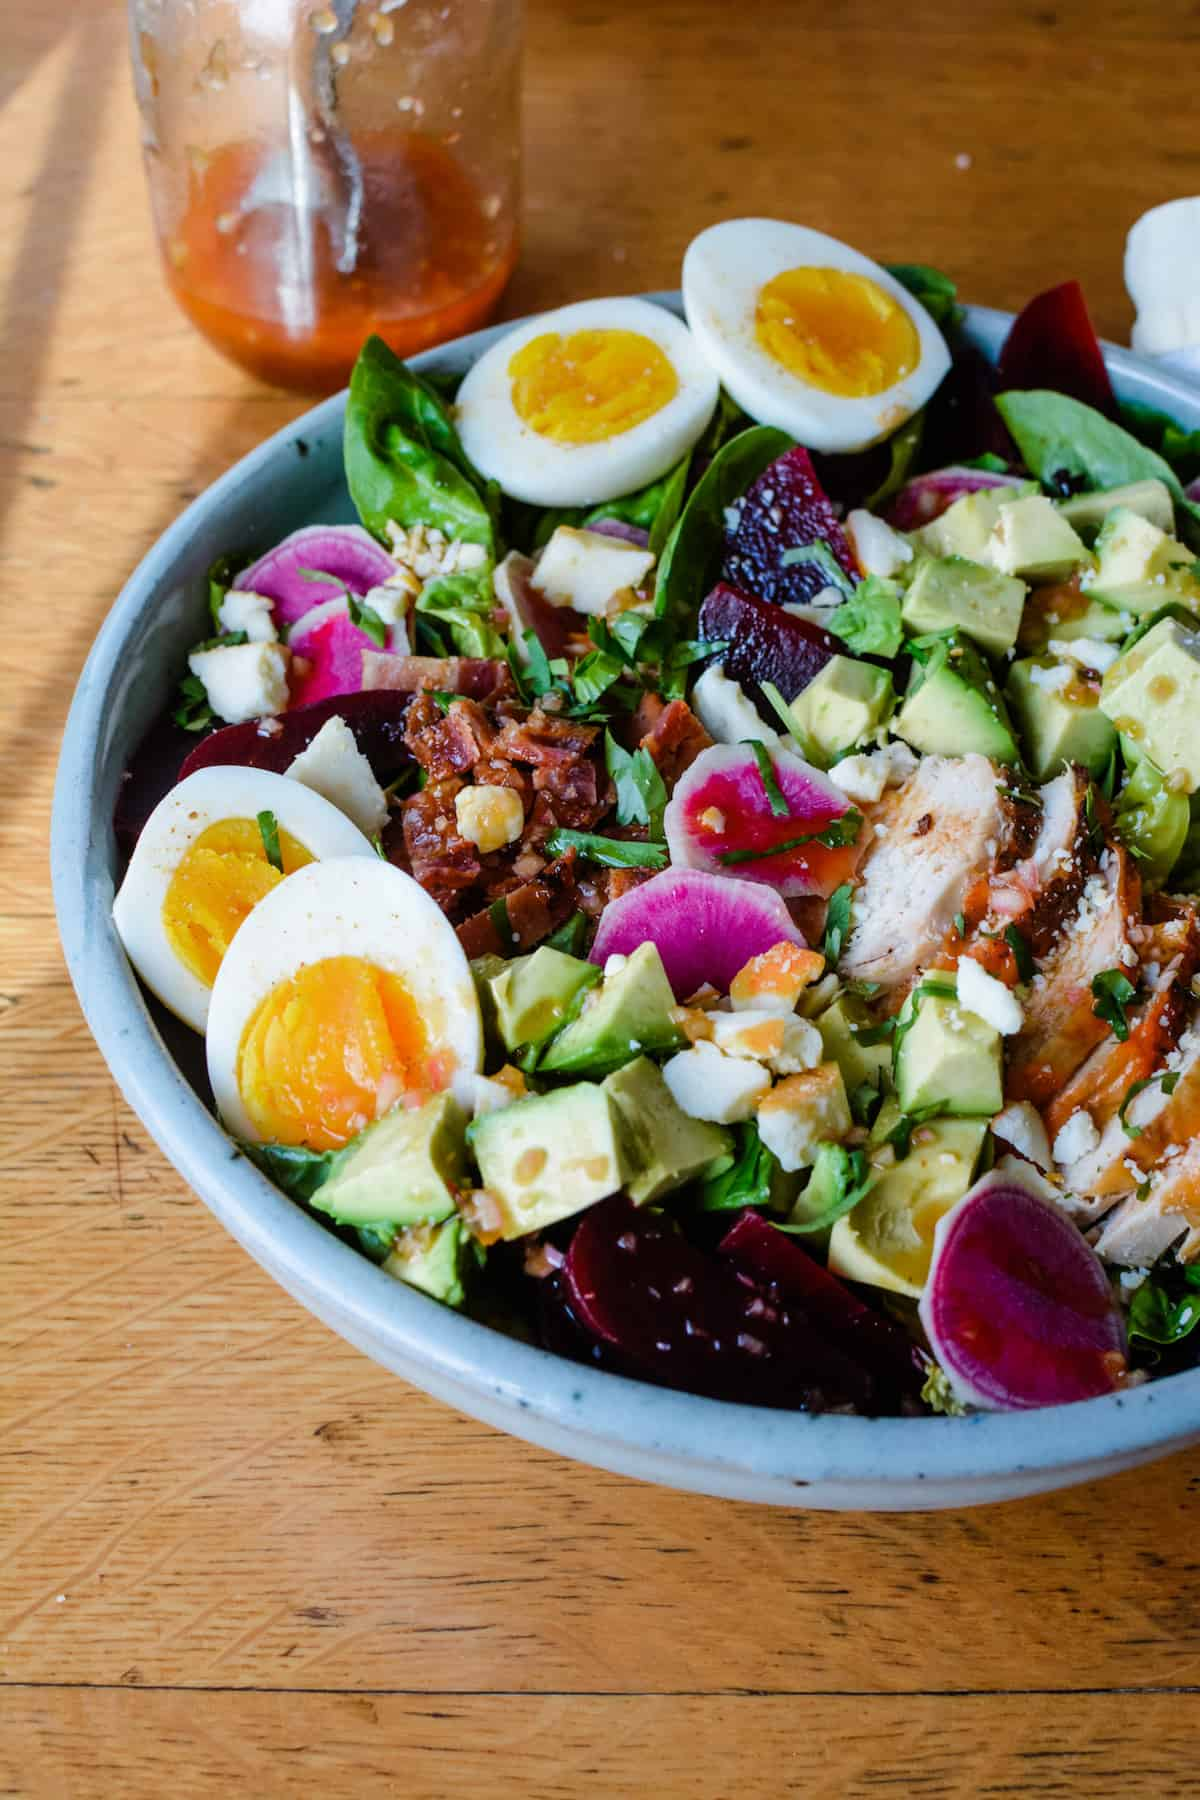 A large Cobb Salad recipe with hard boiled eggs, beets, chicken, and bright pink radishes.